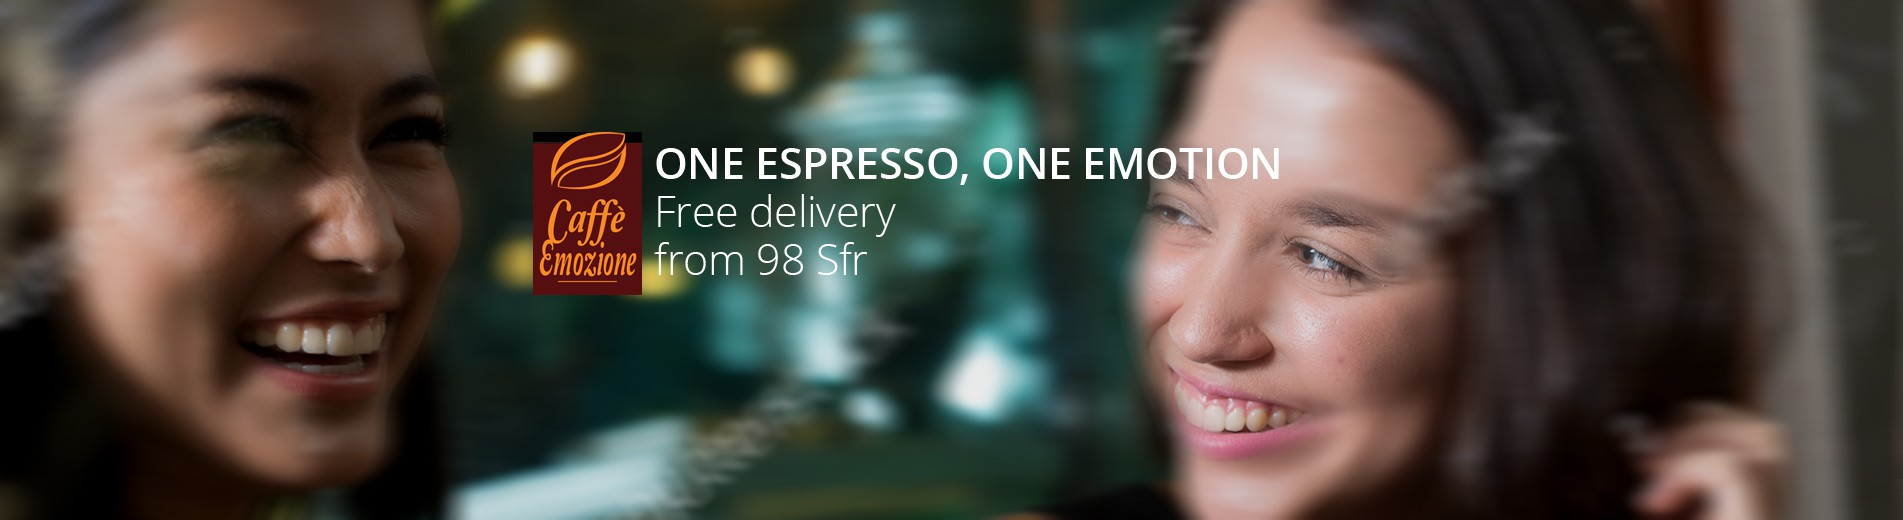 ONE ESPRESSO, ONE EMOTION